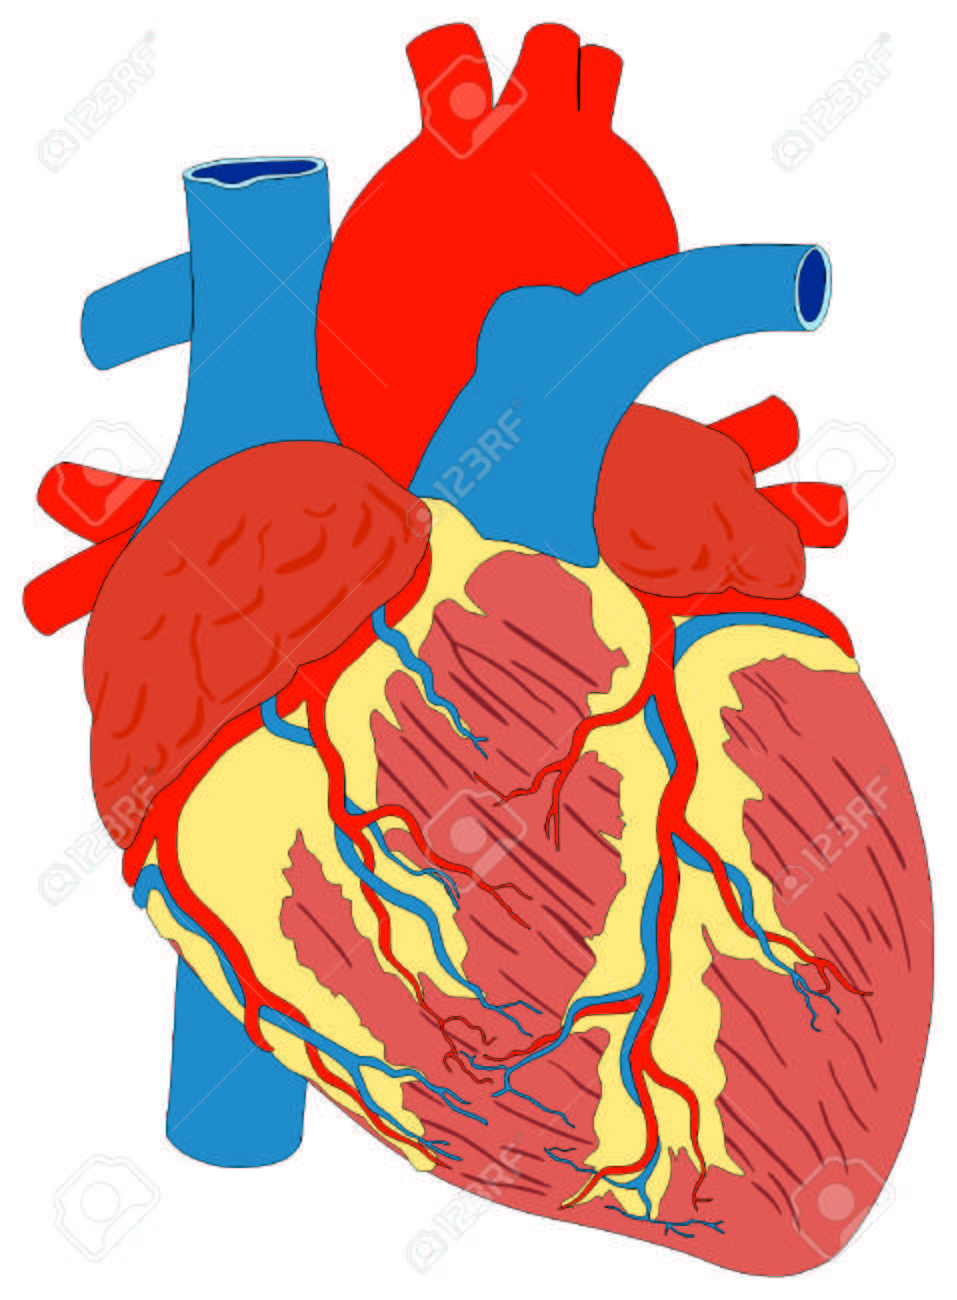 Human heart muscle gross anatomy vector diagram unlabeled outside human heart muscle gross anatomy vector diagram unlabeled outside view with all parts aorta aortic arch ccuart Images